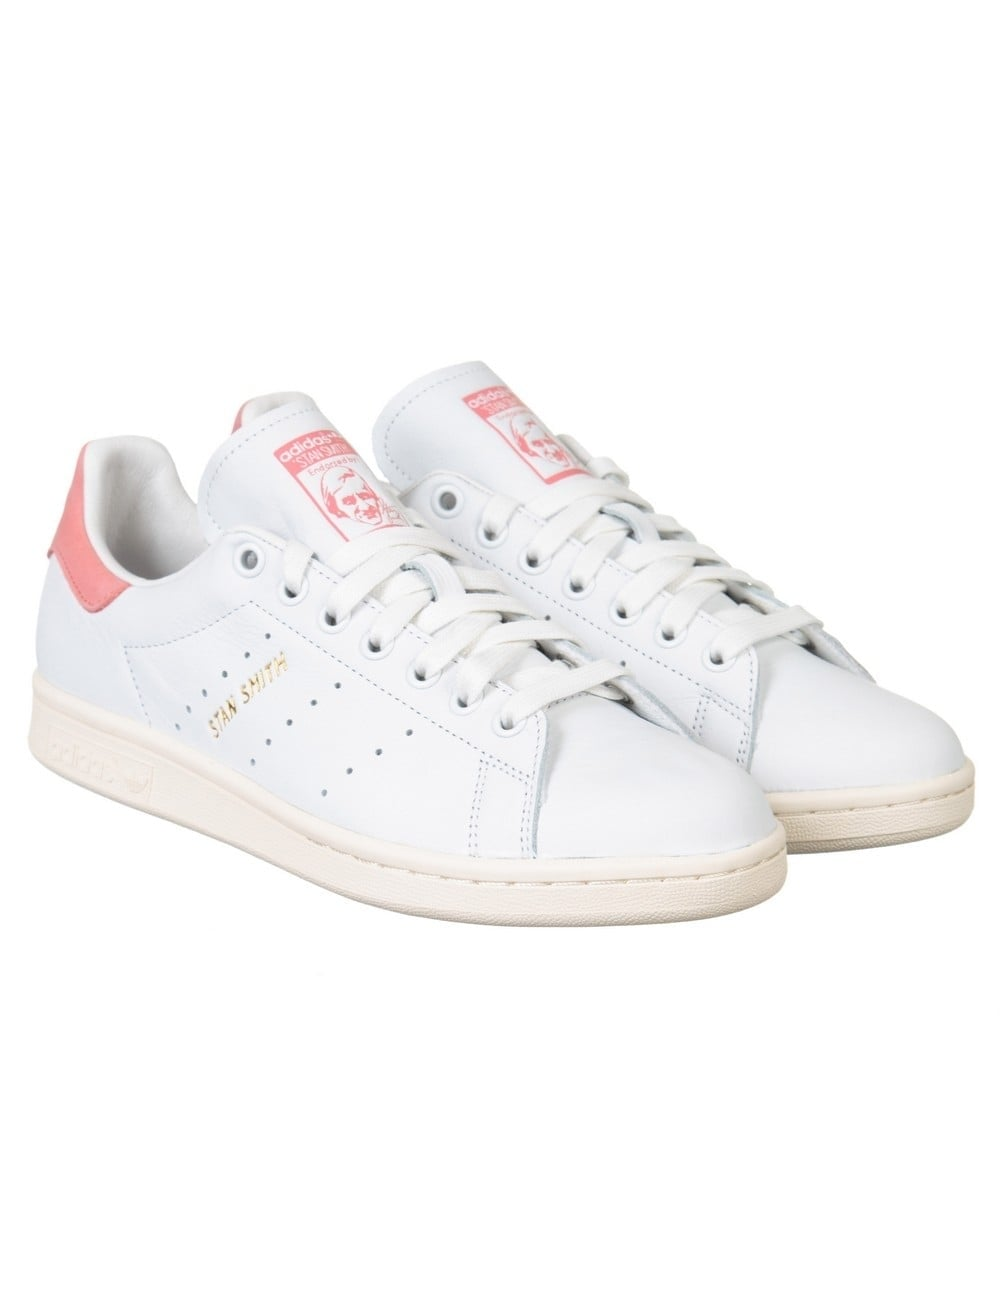 super popular 26af4 b3e5f Stan Smith Shoes - White/Ray Pink